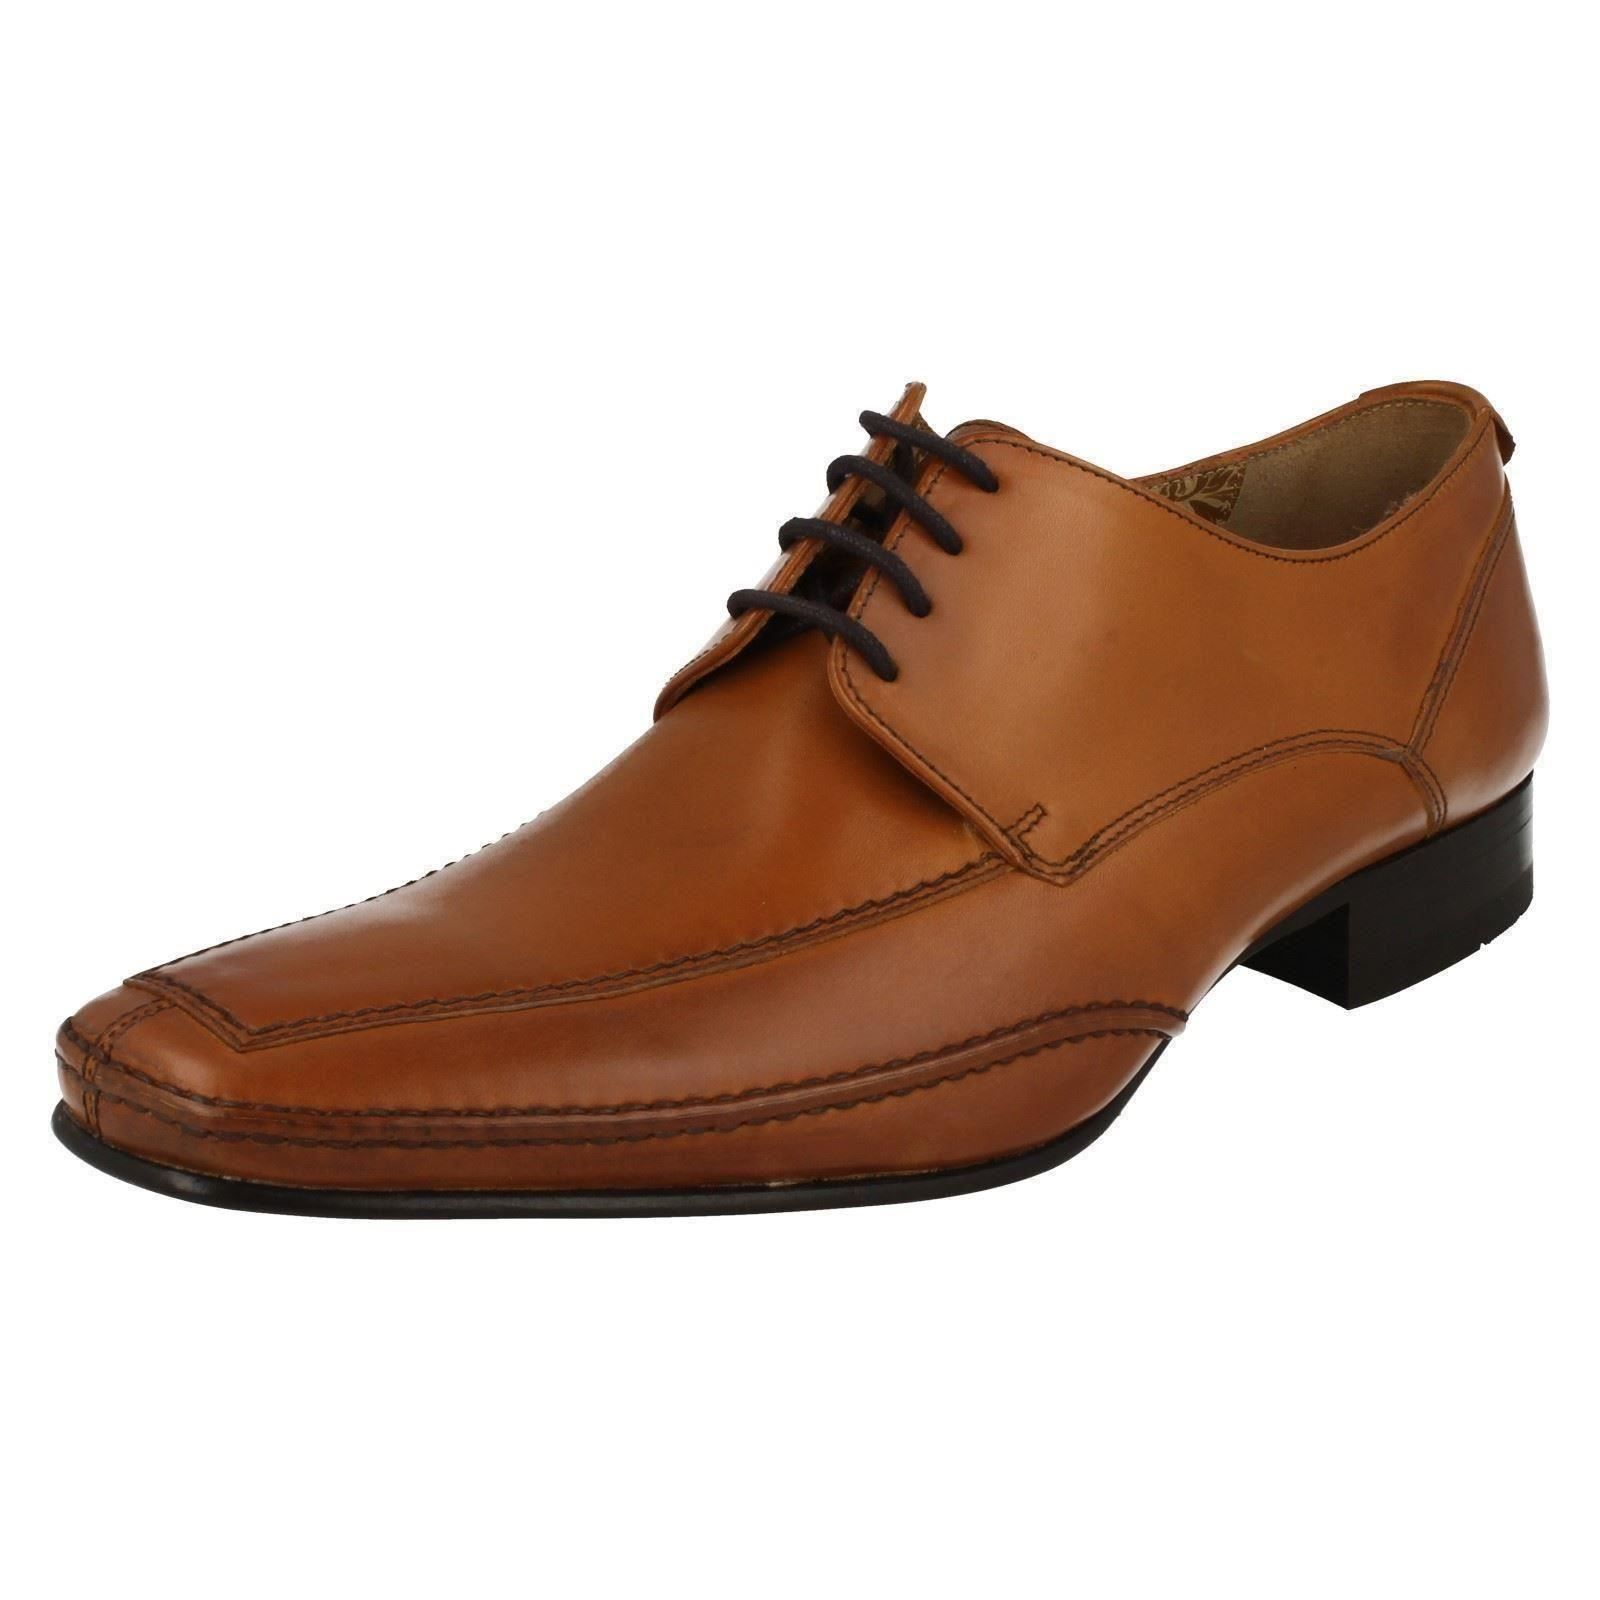 Herren Herren  Loake Smart Leder Lace Up Schuhes Hurst a0fee6